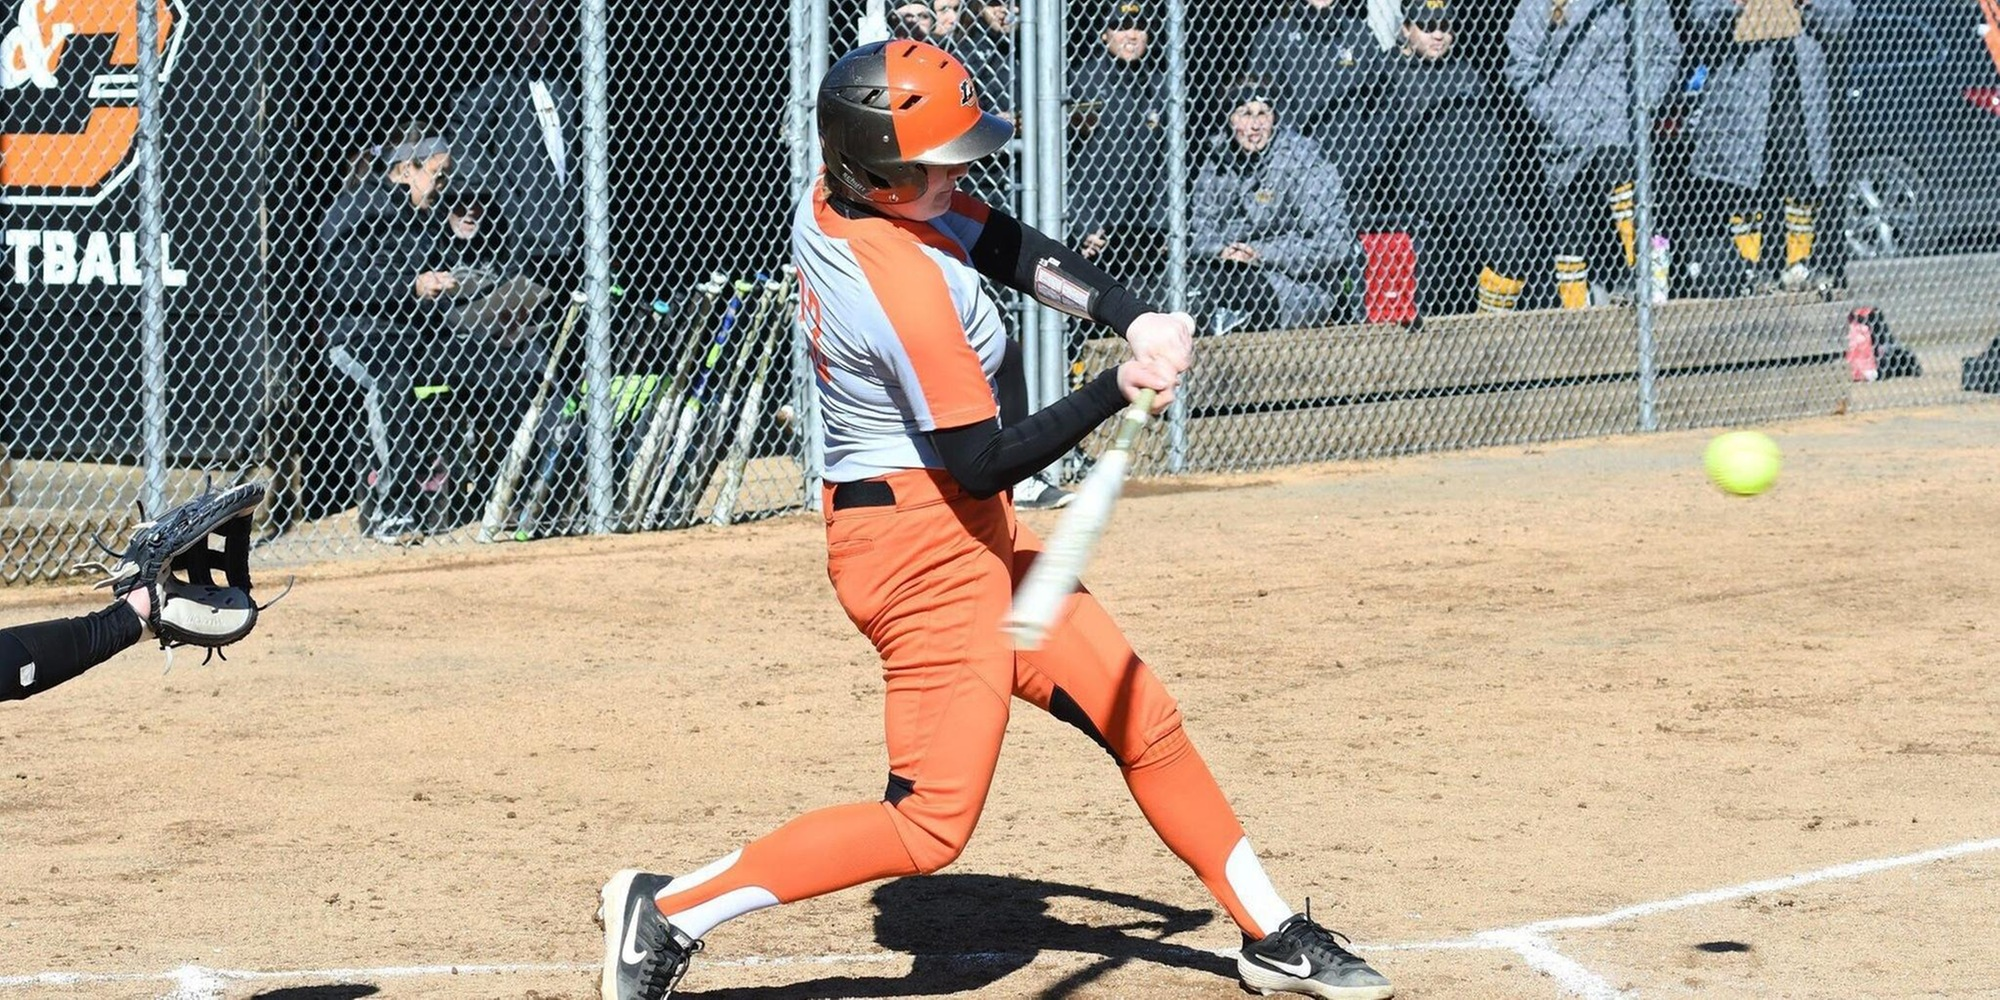 Brackin totals three home runs and 11 RBIs to earn NWC Student-Athlete of the Week